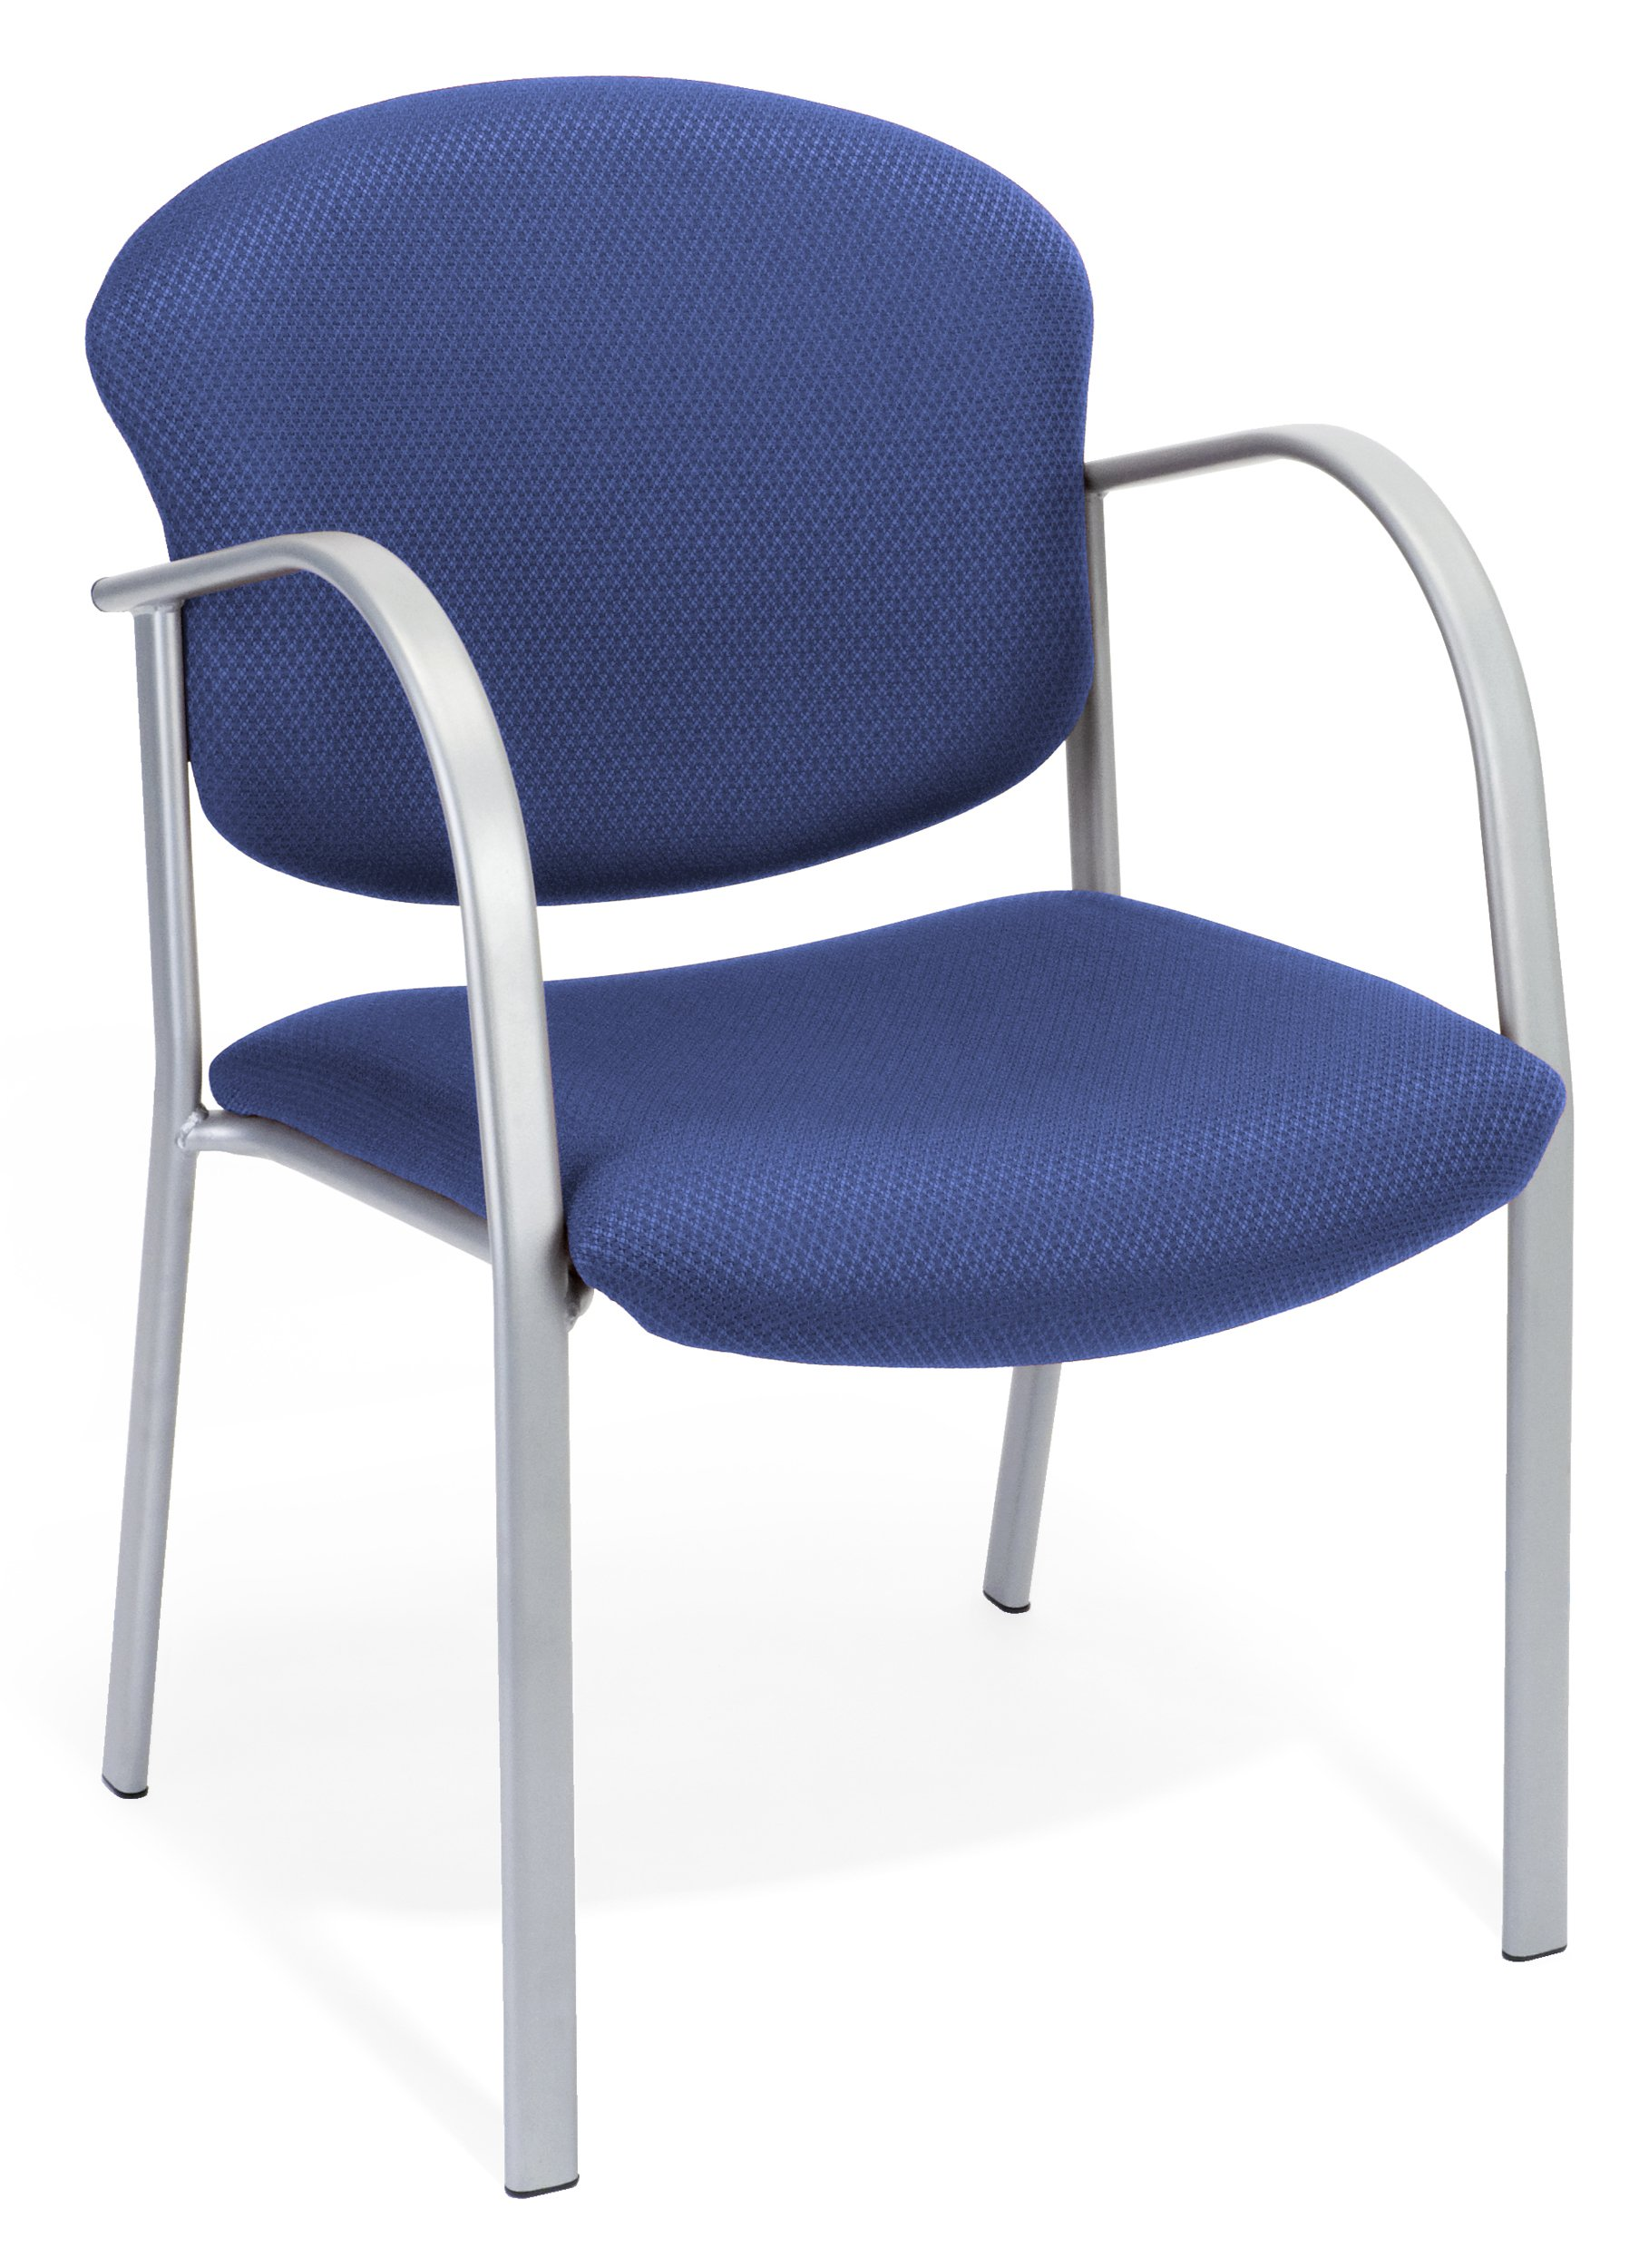 OFM 414-84 Reception Chair with Arms - Fabric Guest Chair, Ocean Blue